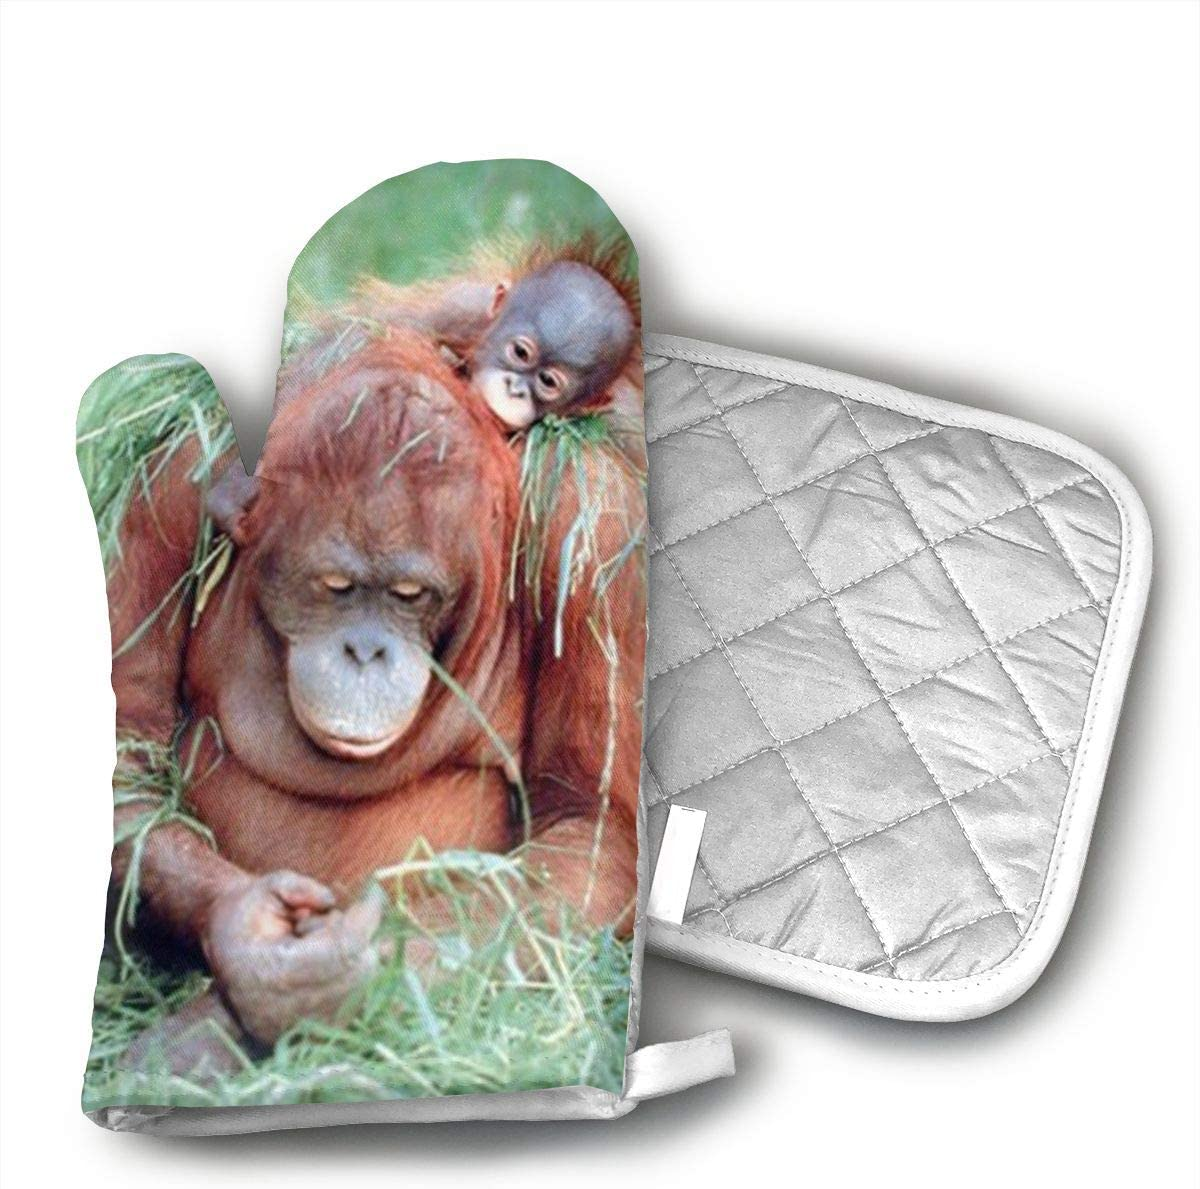 Klasl5 Orangutan and Baby Wildlife Animal Nature Heat Resistant Kitchen Oven Mitt with Non-Slip Printed,for BBQ Cooking Baking, Grilling, Barbecue,Microwave, Machine Washable.